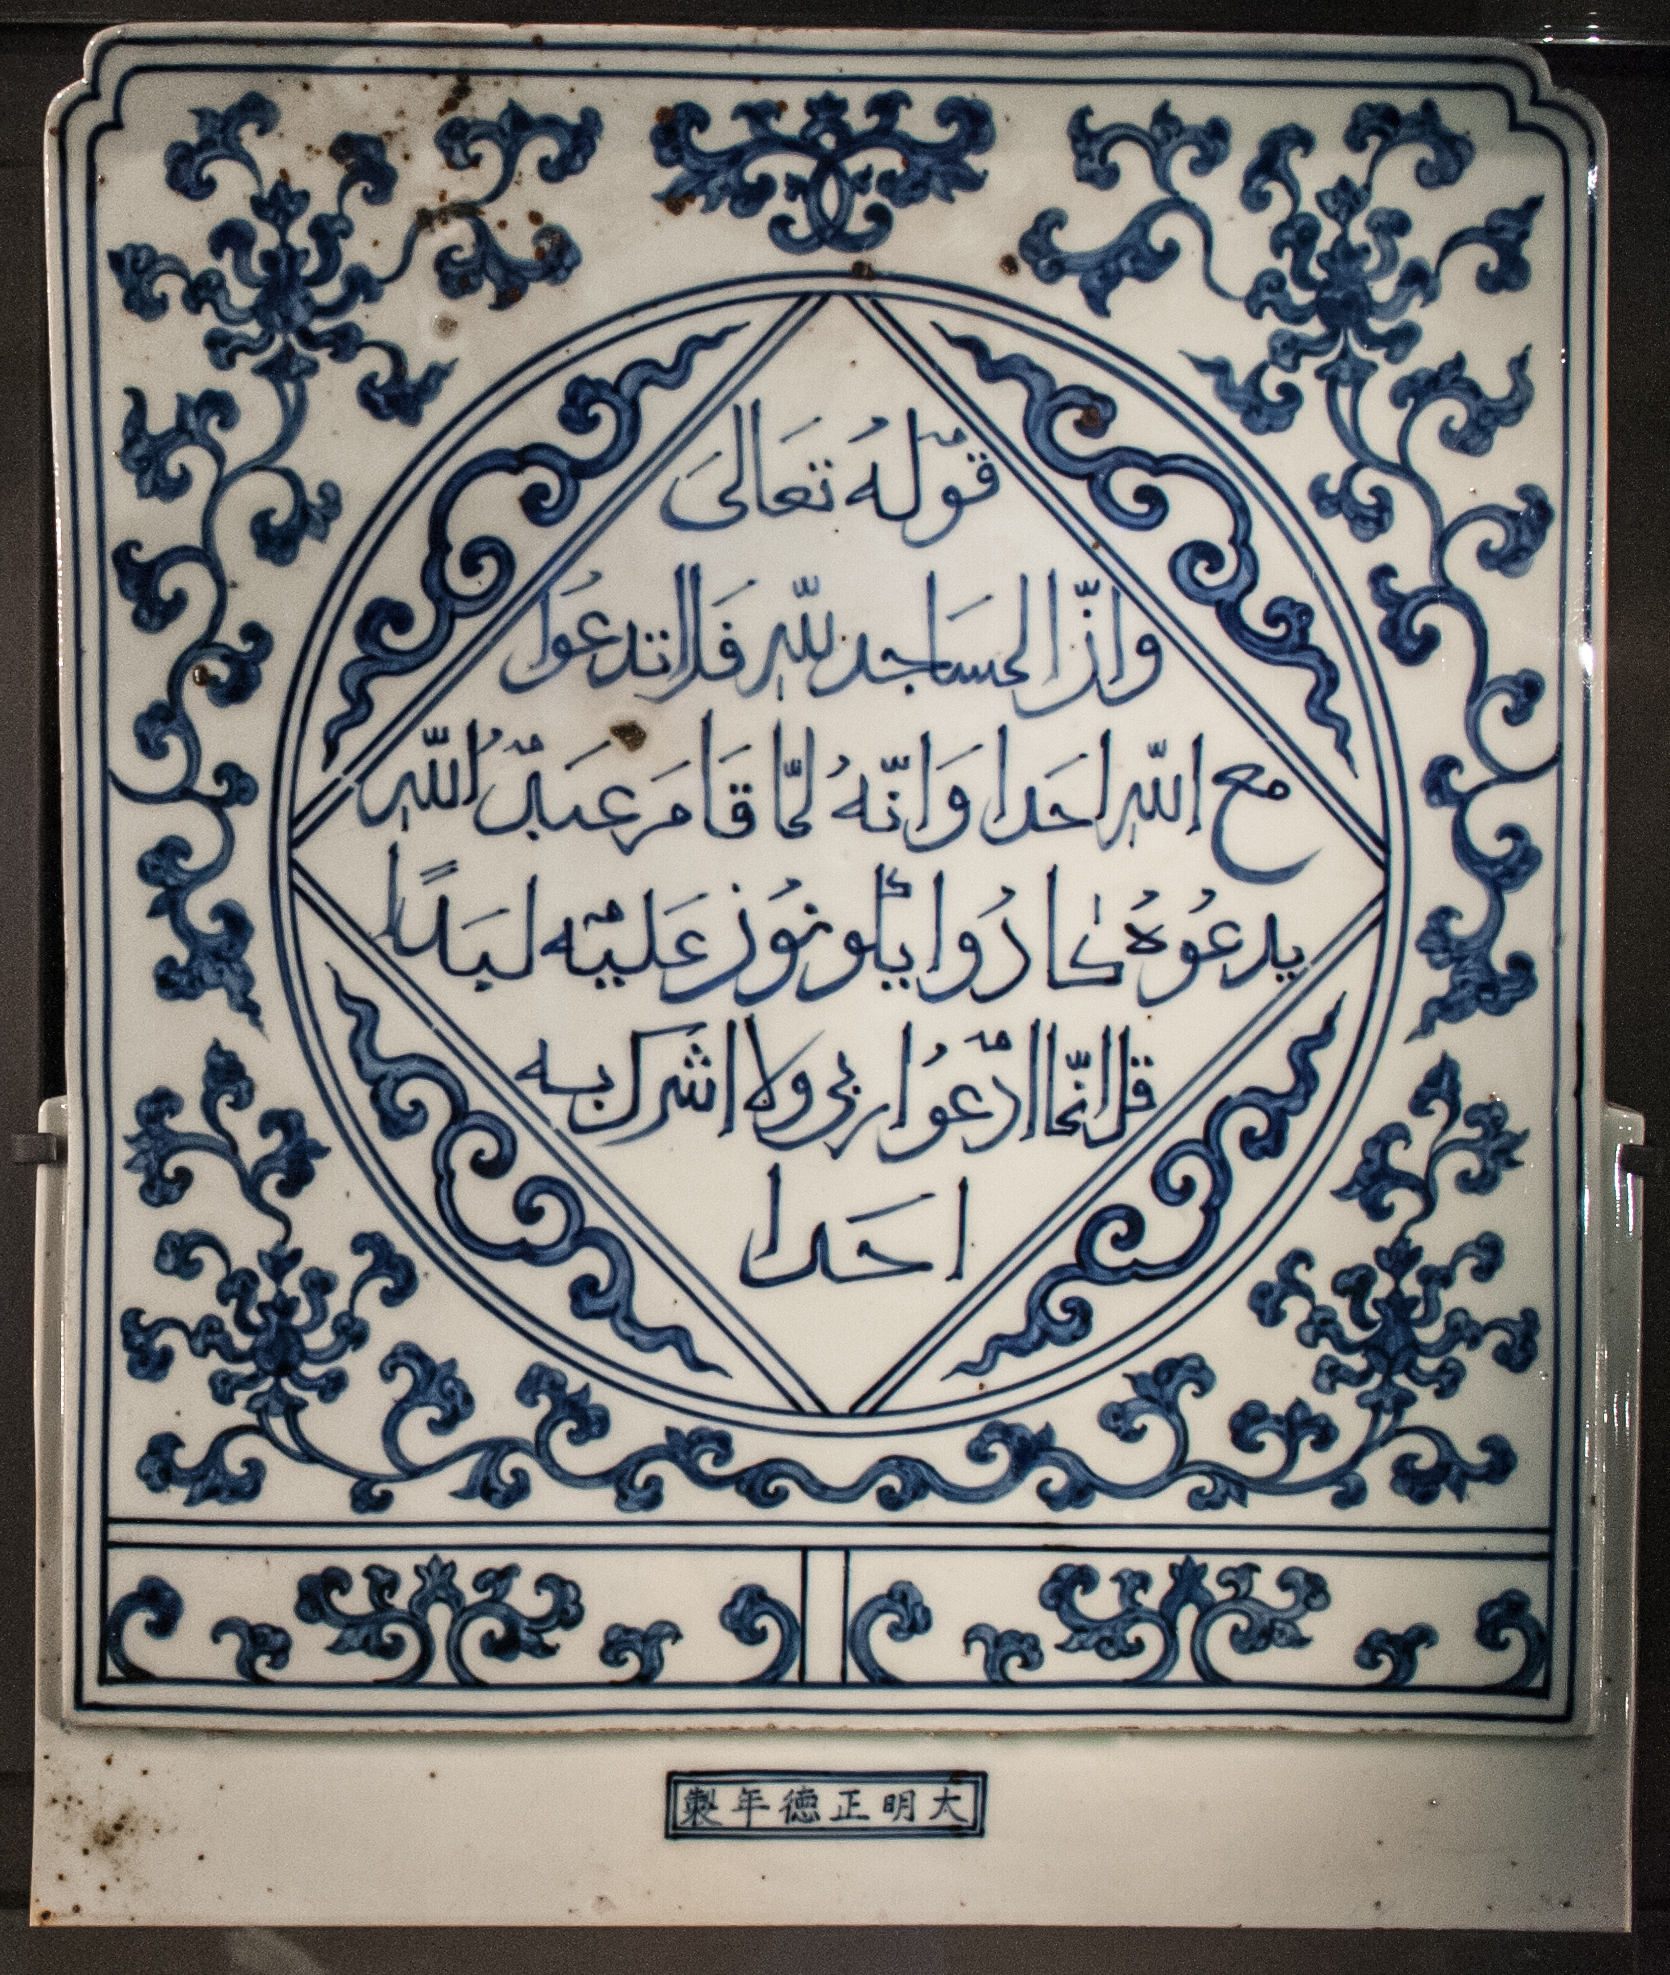 history of arabic History the first generation of immigrants from the middle east began arriving in the late 19th century they were mostly christians from the greater syria province of the ottoman empire, which comprised modern day syria, iraq, lebanon, palestine and jordan.